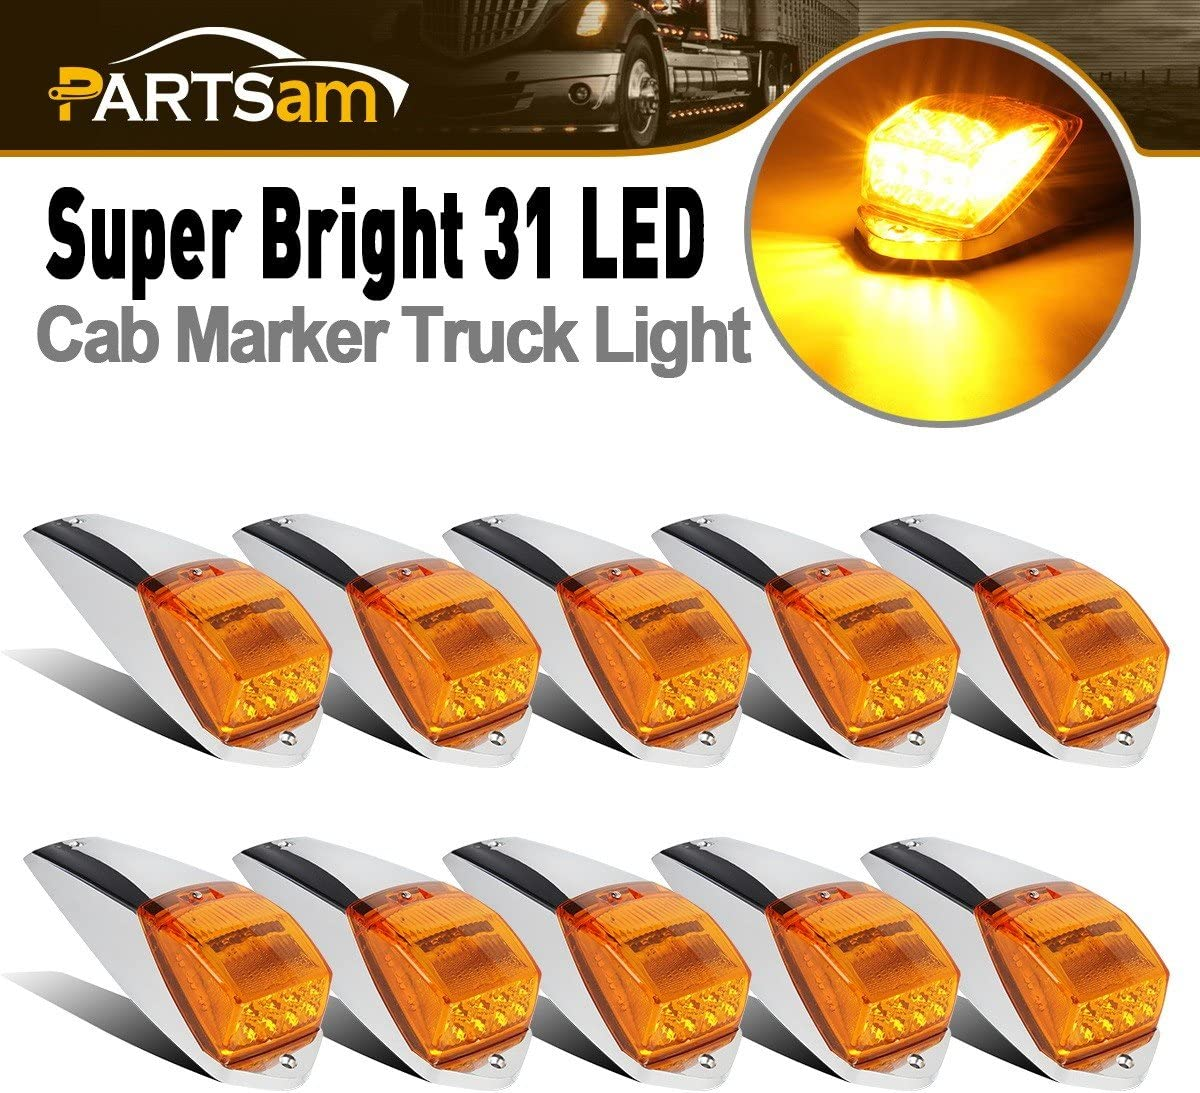 B079FKR9VR Partsam 10pcs Amber 31LED Cab Marker Light Top Roof Running Lights w/Chrome Base Compatible with Peterbilt/Kenworth/Freightliner/Volvo/Western Star/Mack/International/Paccar Trailer Trucks 81FJ2BHYaP9L.SL1200_